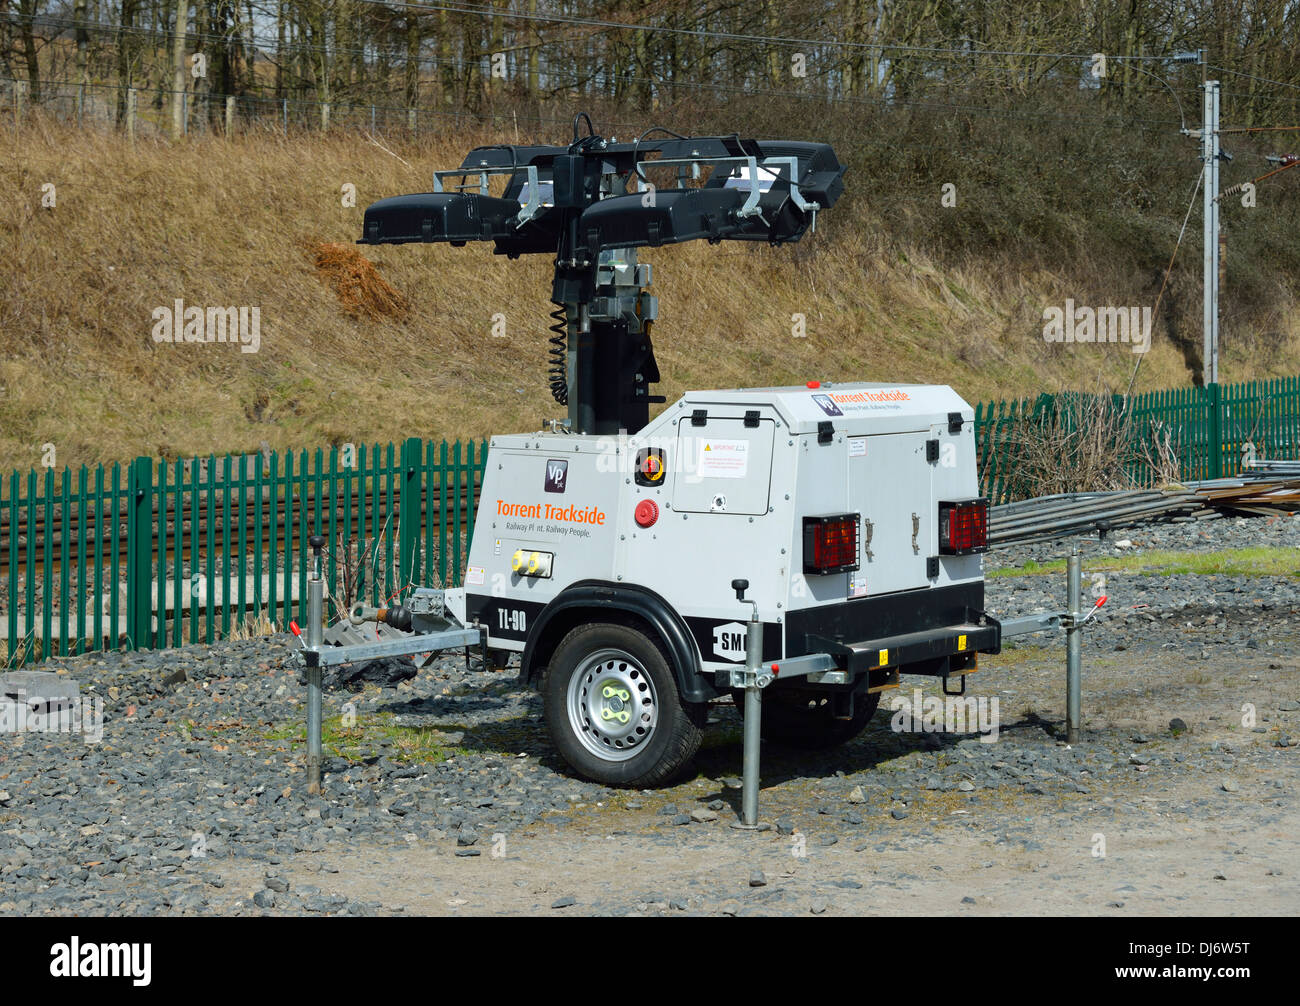 Torrent Trackside mobile lighting tower. Lowgill, Cumbria, England, United Kingdom, Europe. Stock Photo